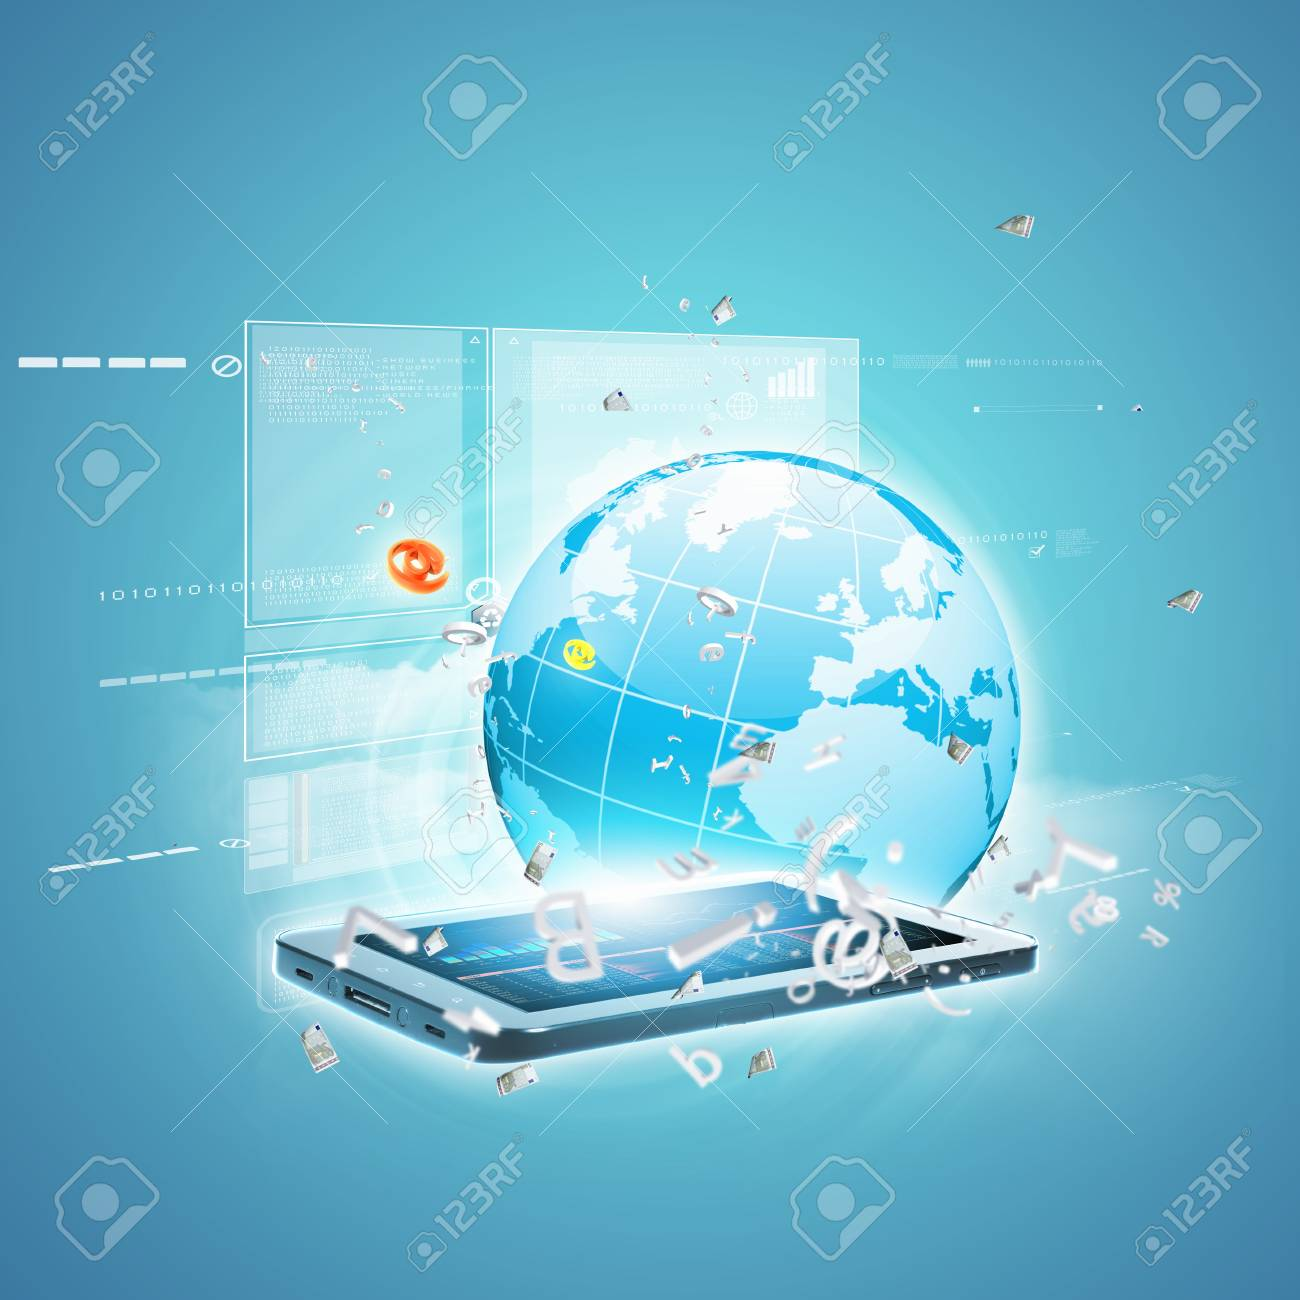 Best Internet Concept of global business from concepts series Stock Photo - 16600313